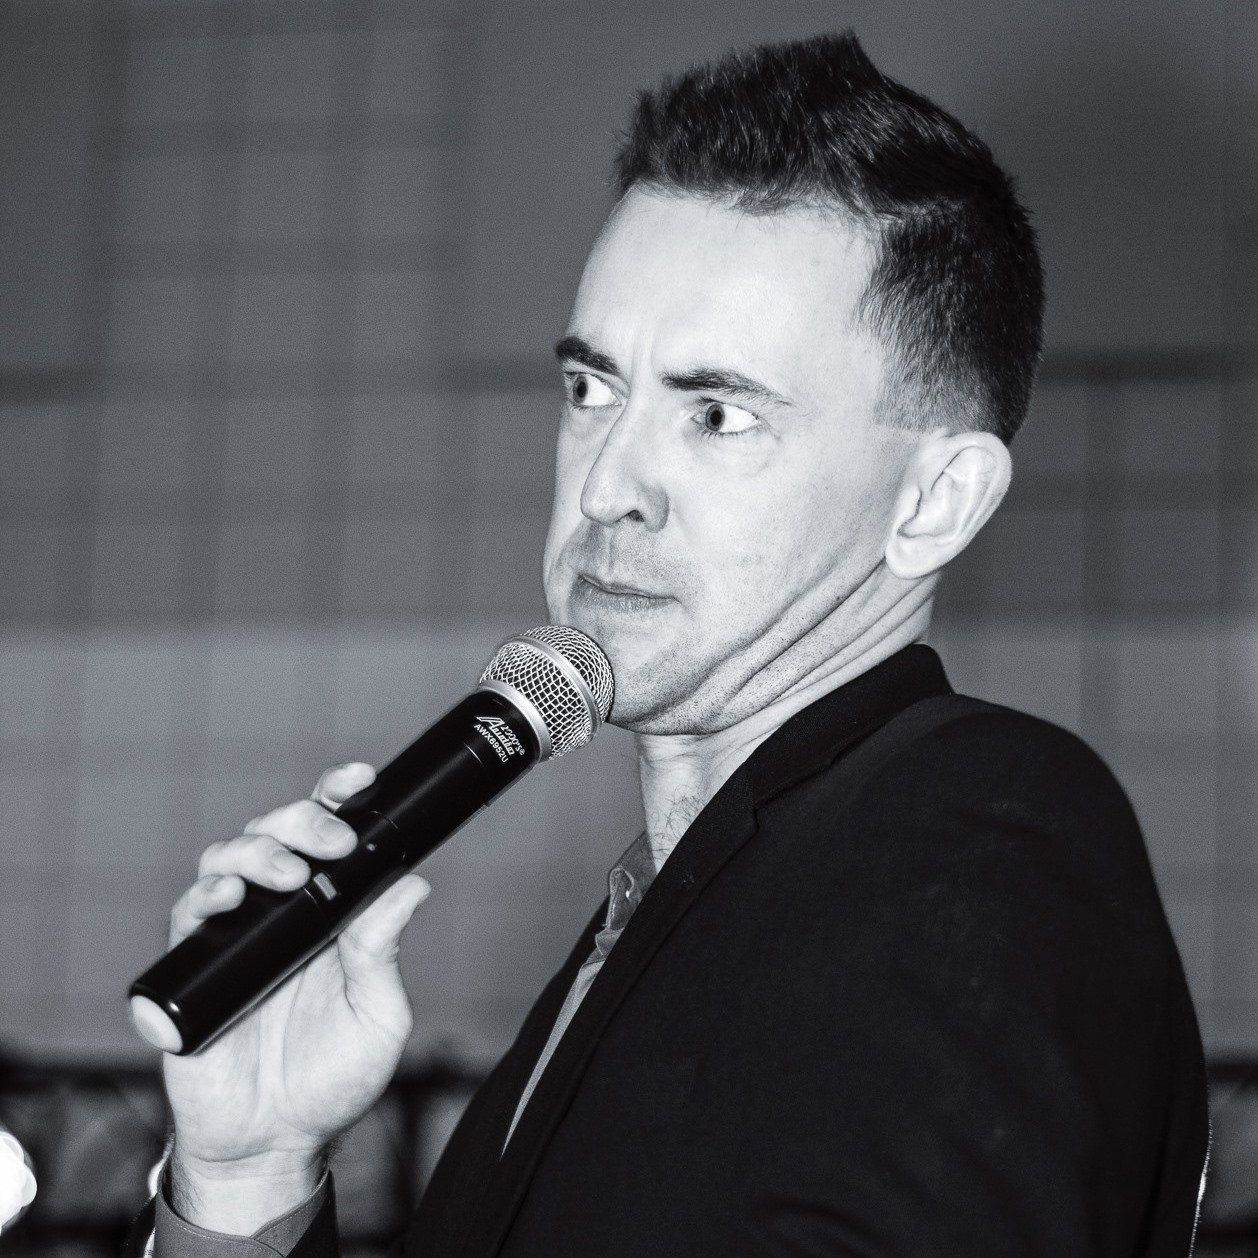 Ross Heintzkill, circa 2015, emceeing an event and holding a microphone. A perfectly odd moment captured by the photographer.